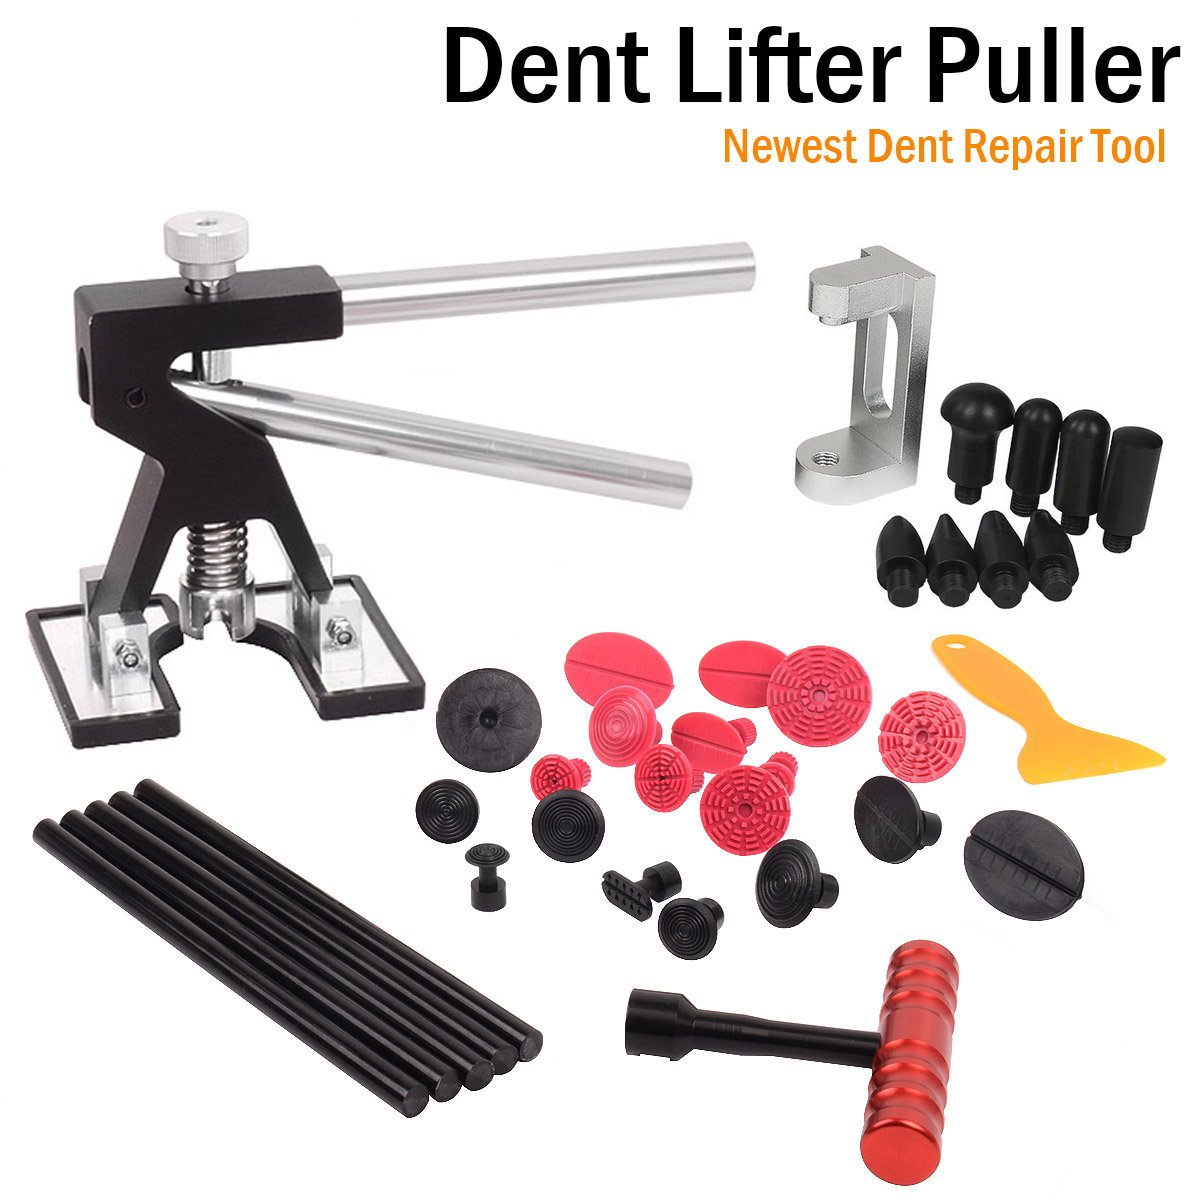 WHDZ Car Dent Repair Tools Dent Puller Paintless Removal Kit Black Dent Lifter with 19pcs Dent Removal Pulling Tabs Suction Cup Plate Pro Glue Sticks for Vehicle SUV Car Auto Body Hail Damage Remover